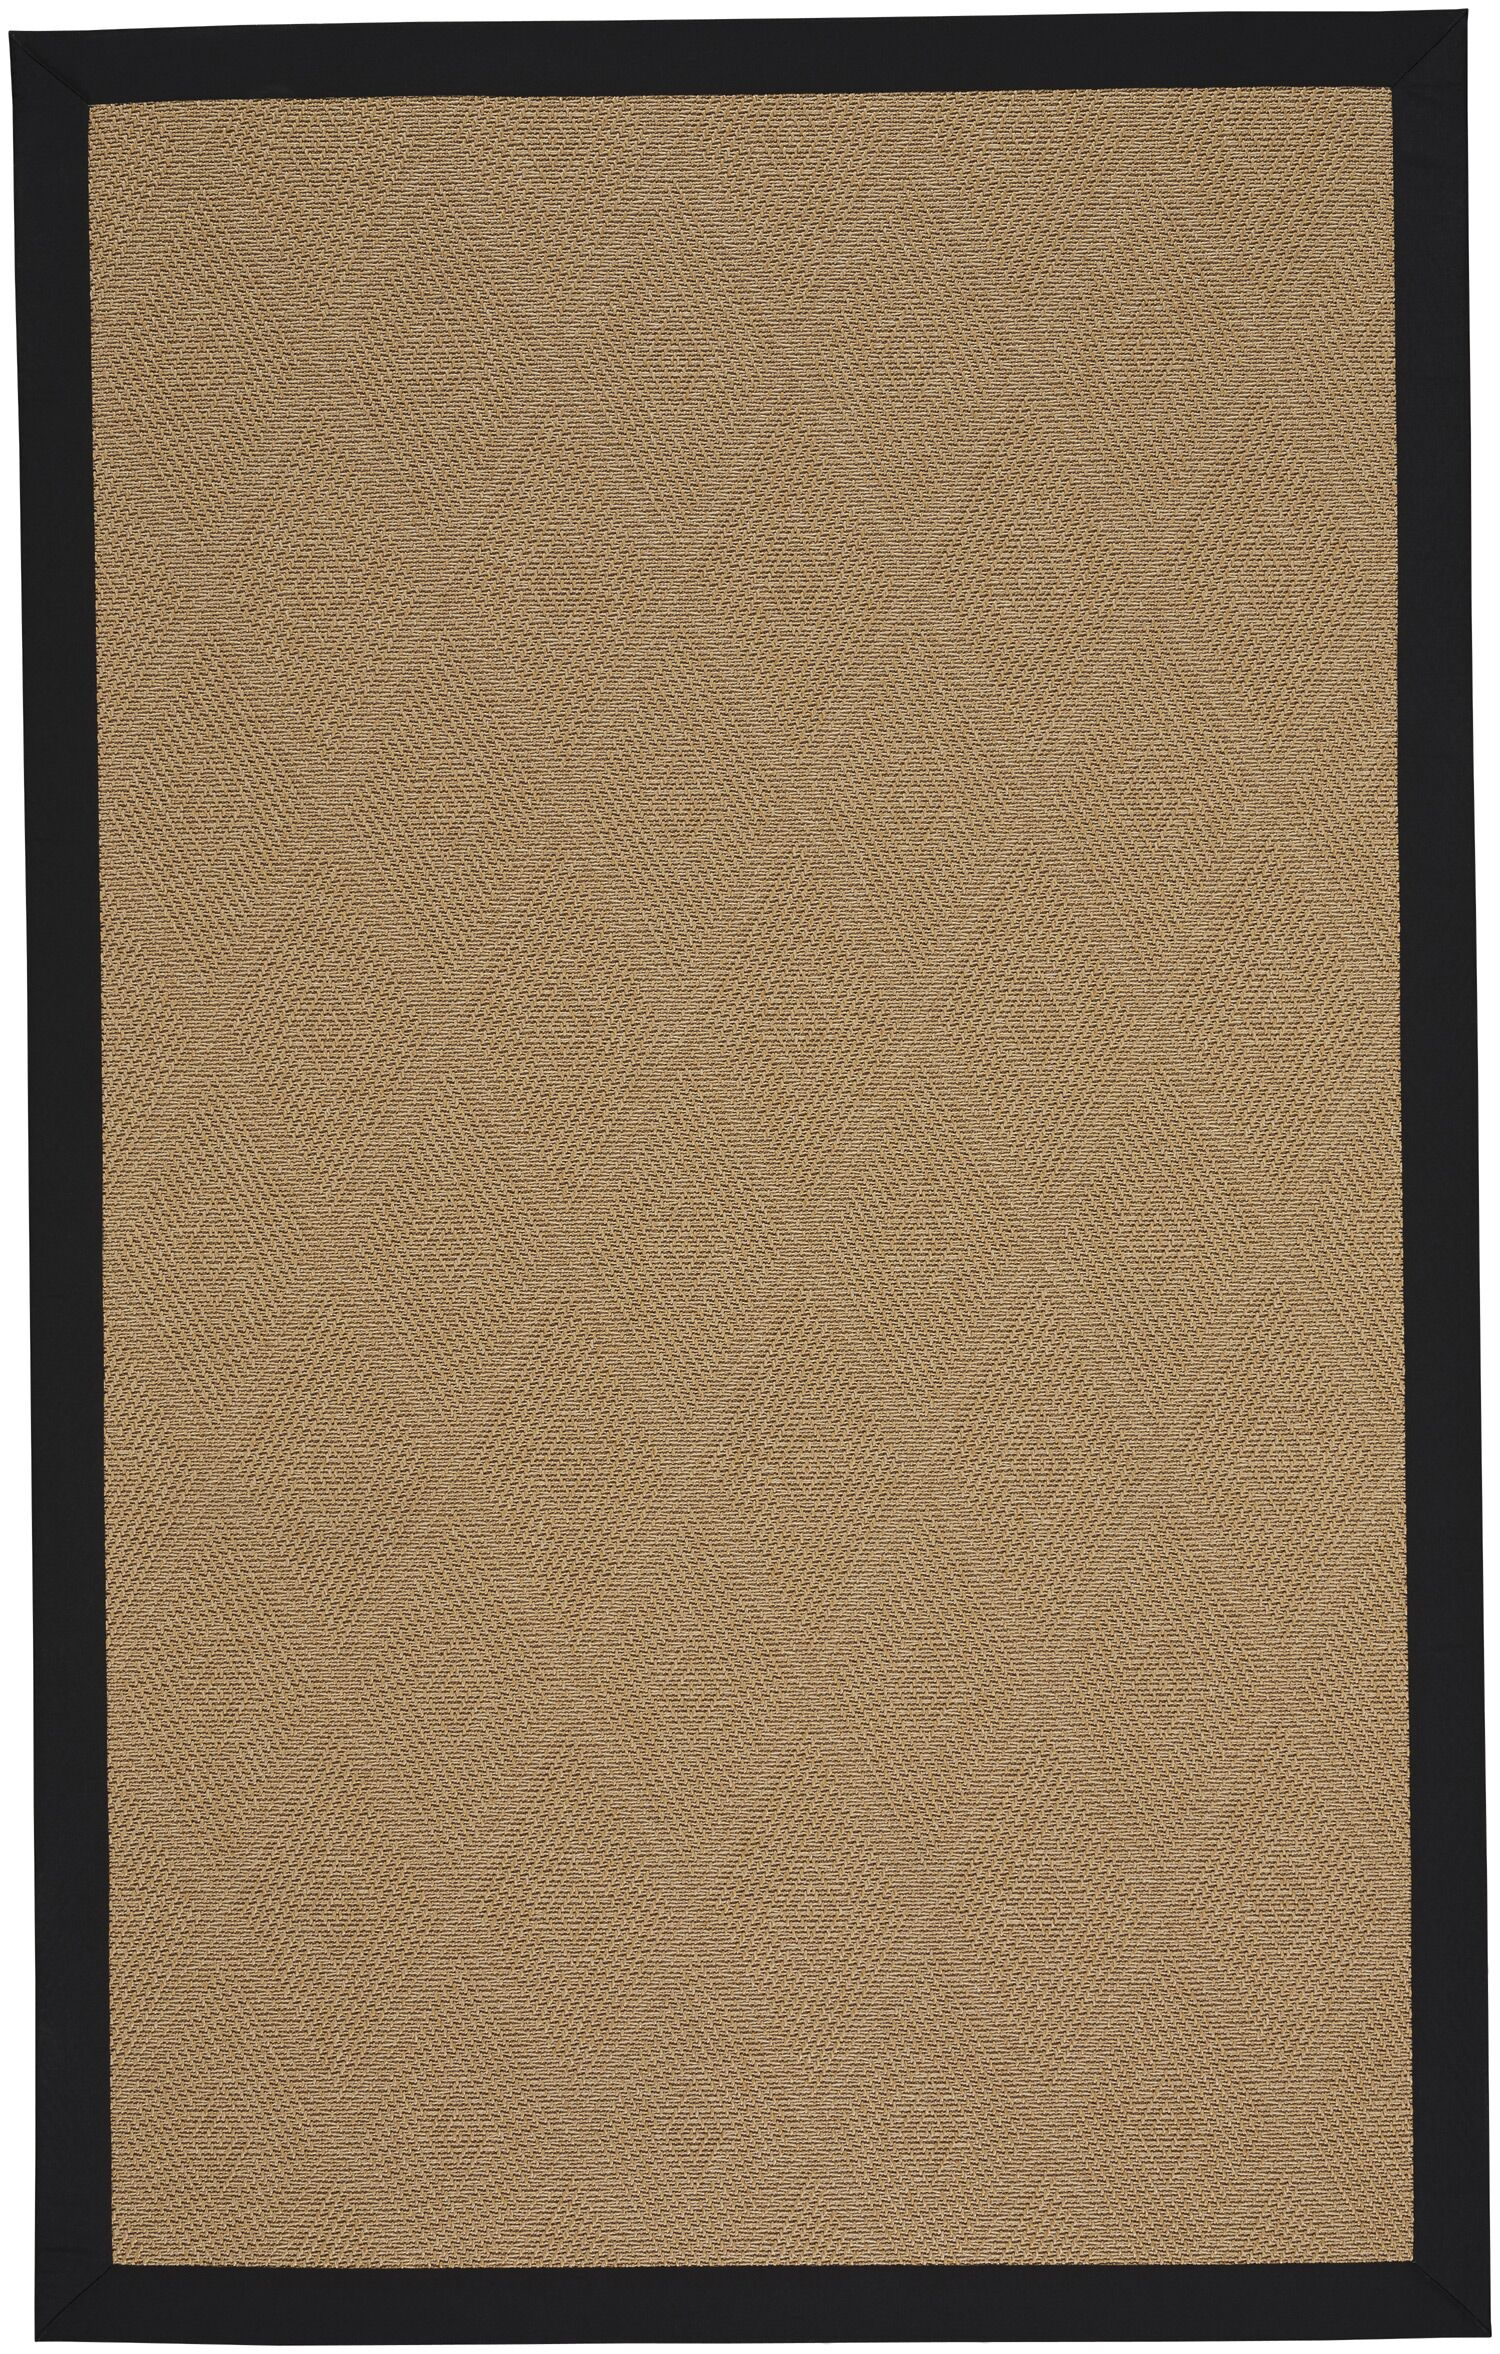 Gresham Agave Braided Ebony Tan Indoor/Outdoor Area Rug Rug Size: Square 8'